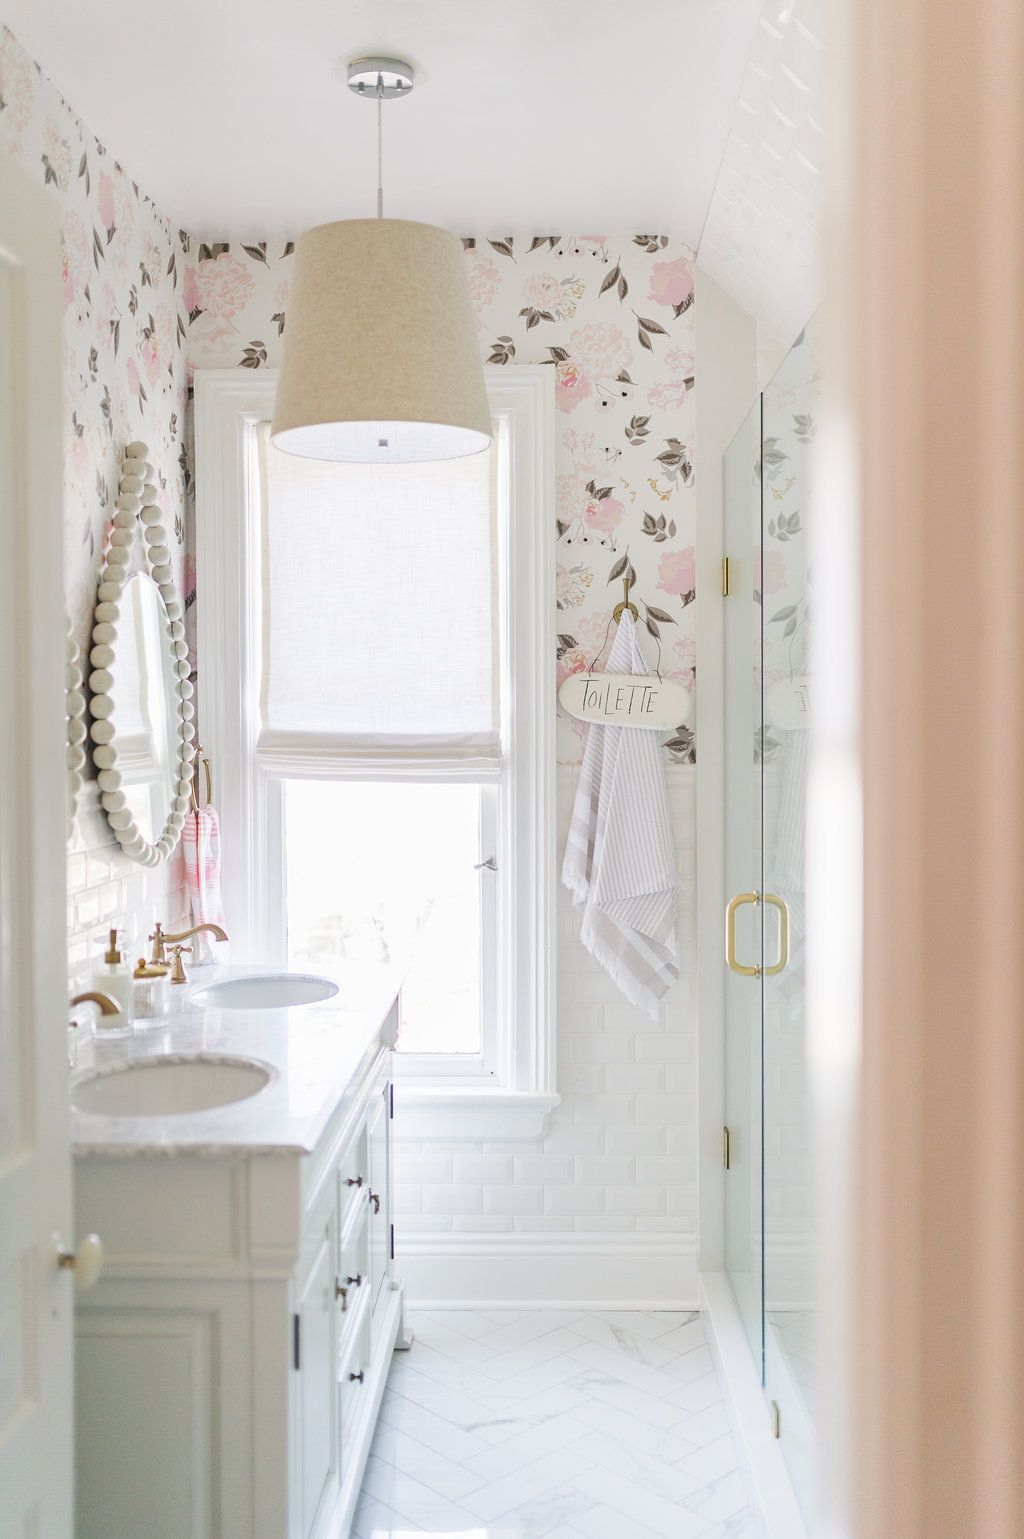 If You Follow Me You Ll Know That I Define My Style As Airy Modern And Feminine And This Bathroom Real Feminine Bathroom Beautiful Bathrooms Bathroom Design Feminine bathroom decorating ideas